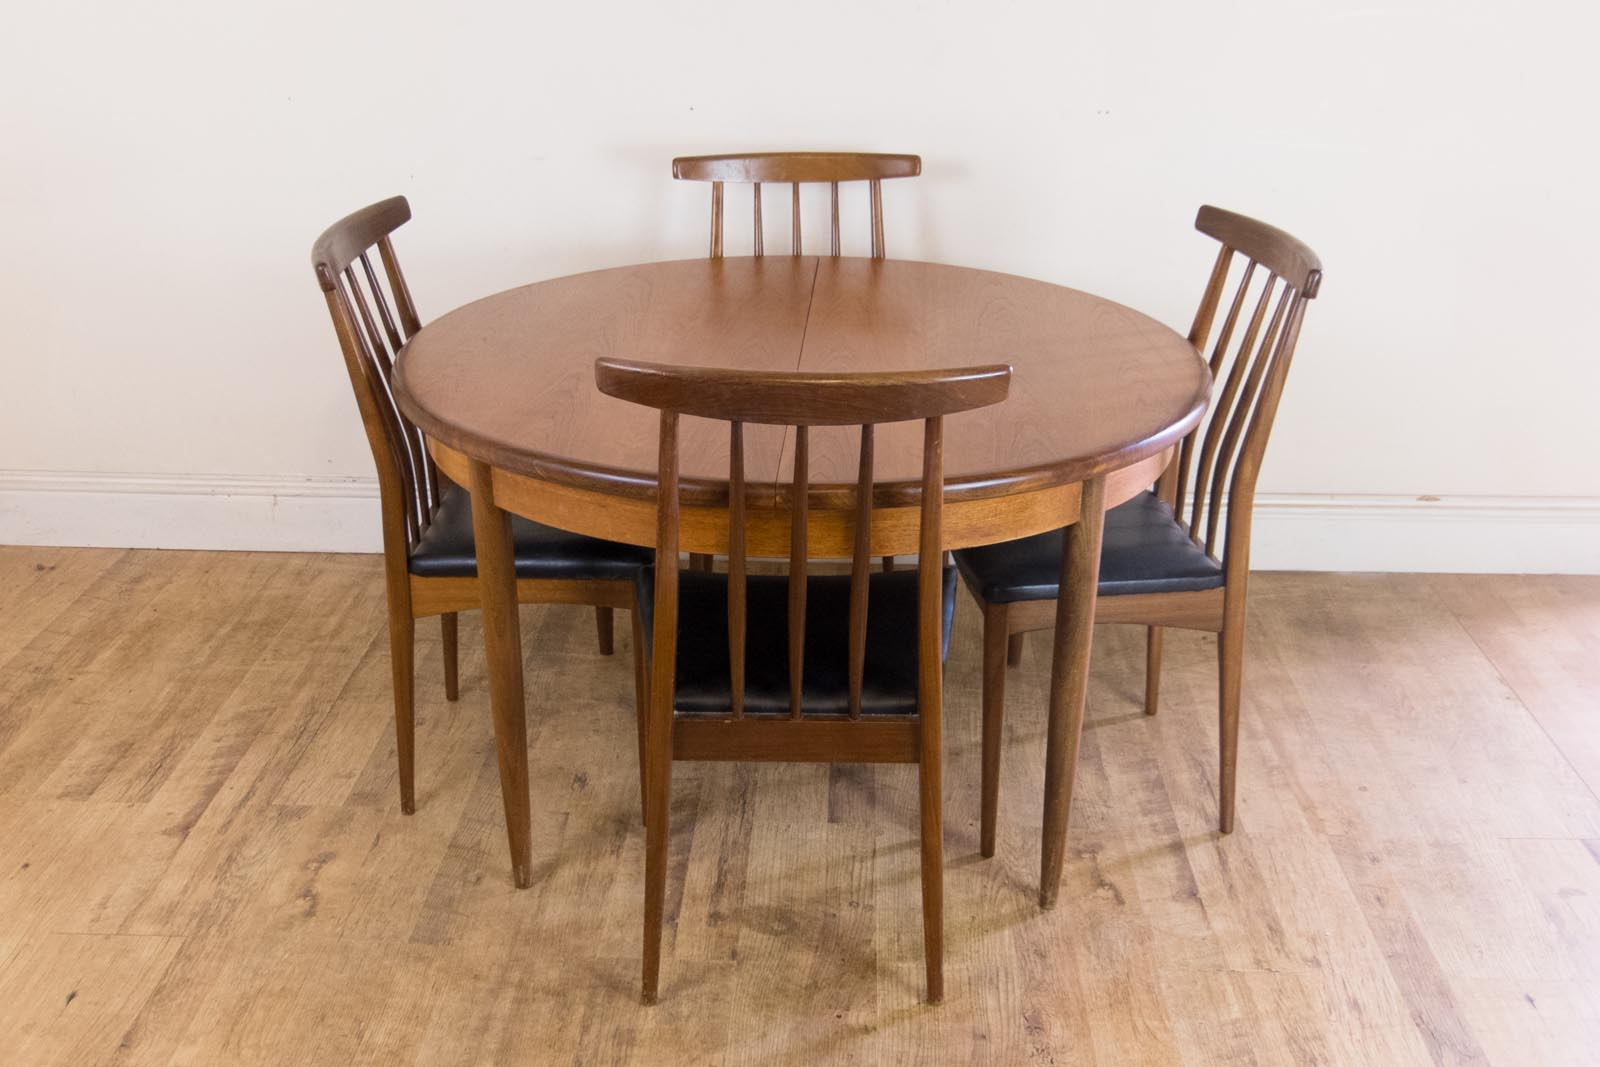 Vintage retro g plan teak extendably dining table and 4 for G plan dining room furniture